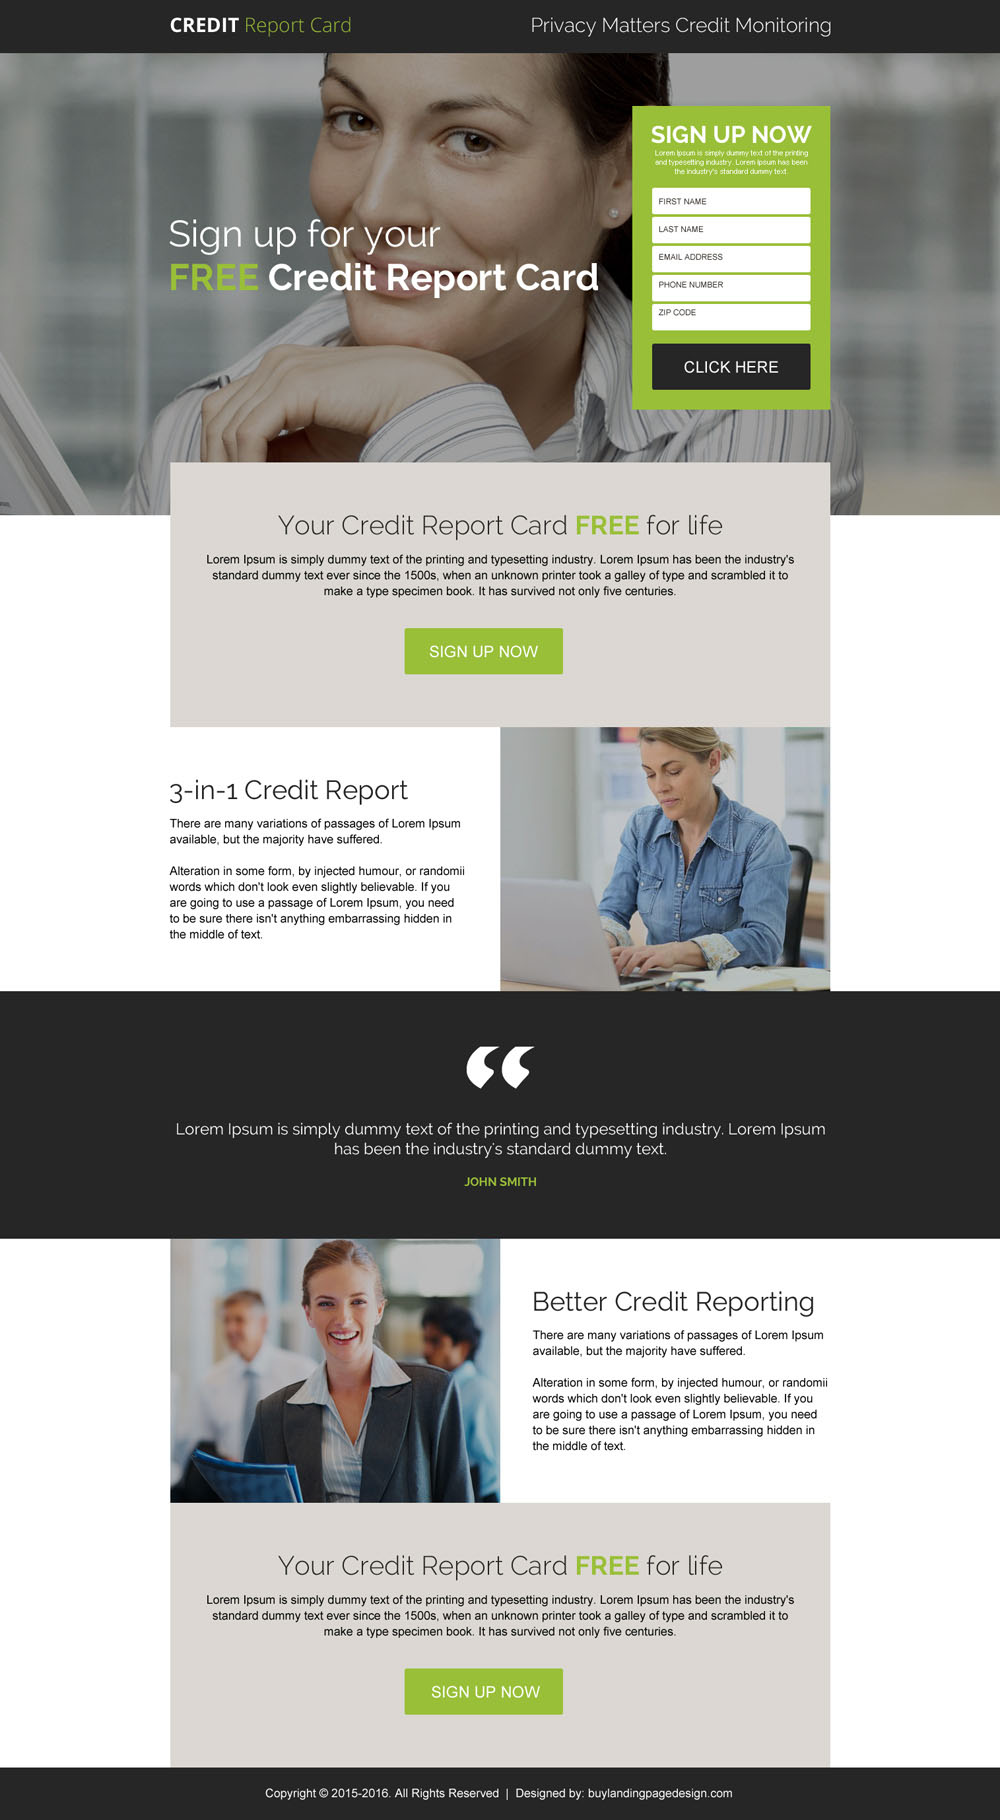 free-credit-report-card-for-life-sign-up-lead-generation-landing-page-design-009